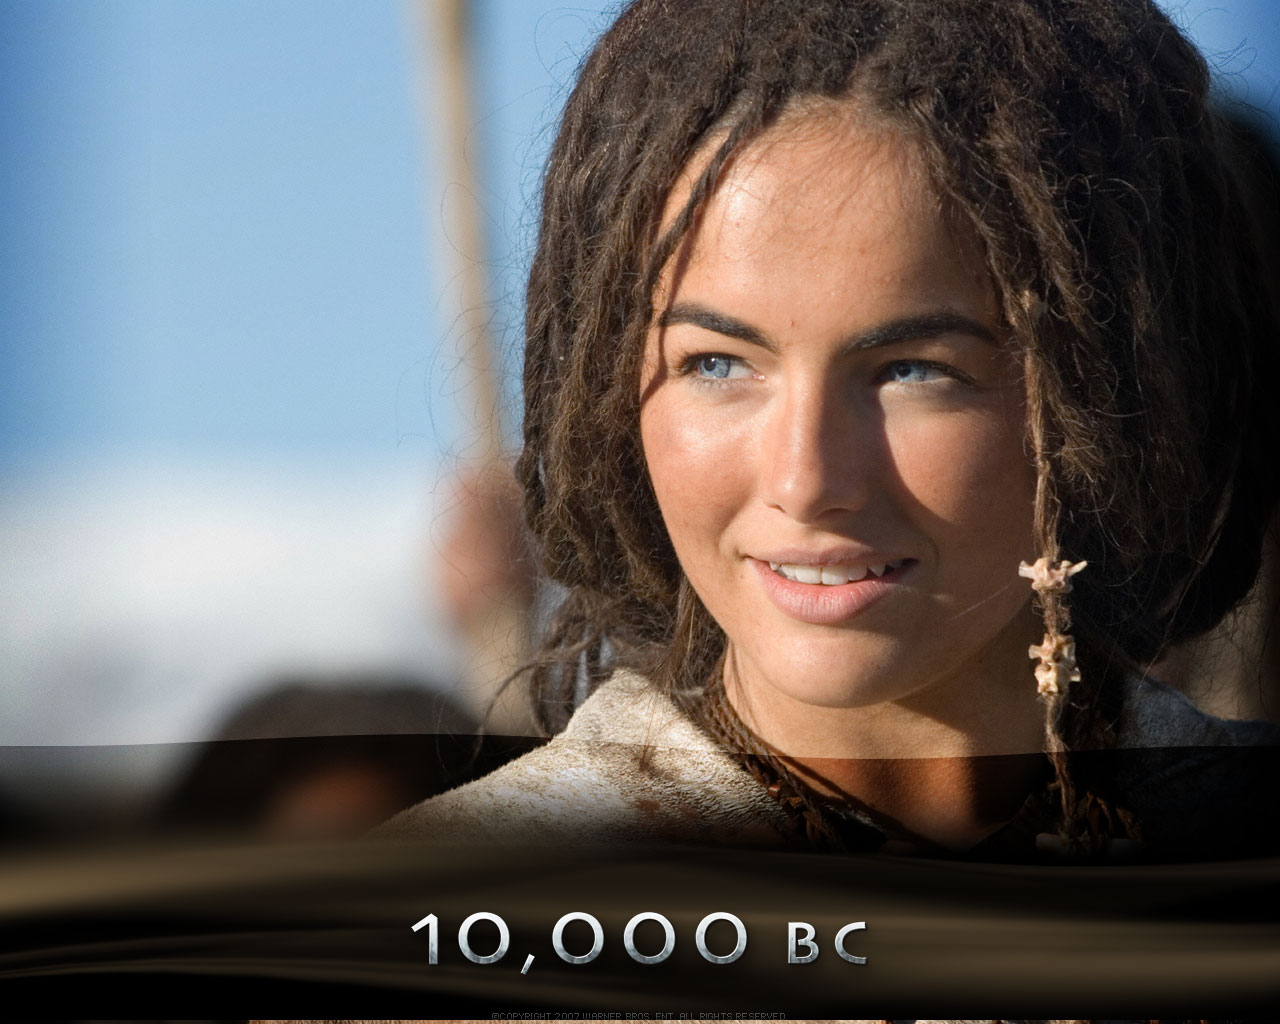 Photos 10,000 BC Movies